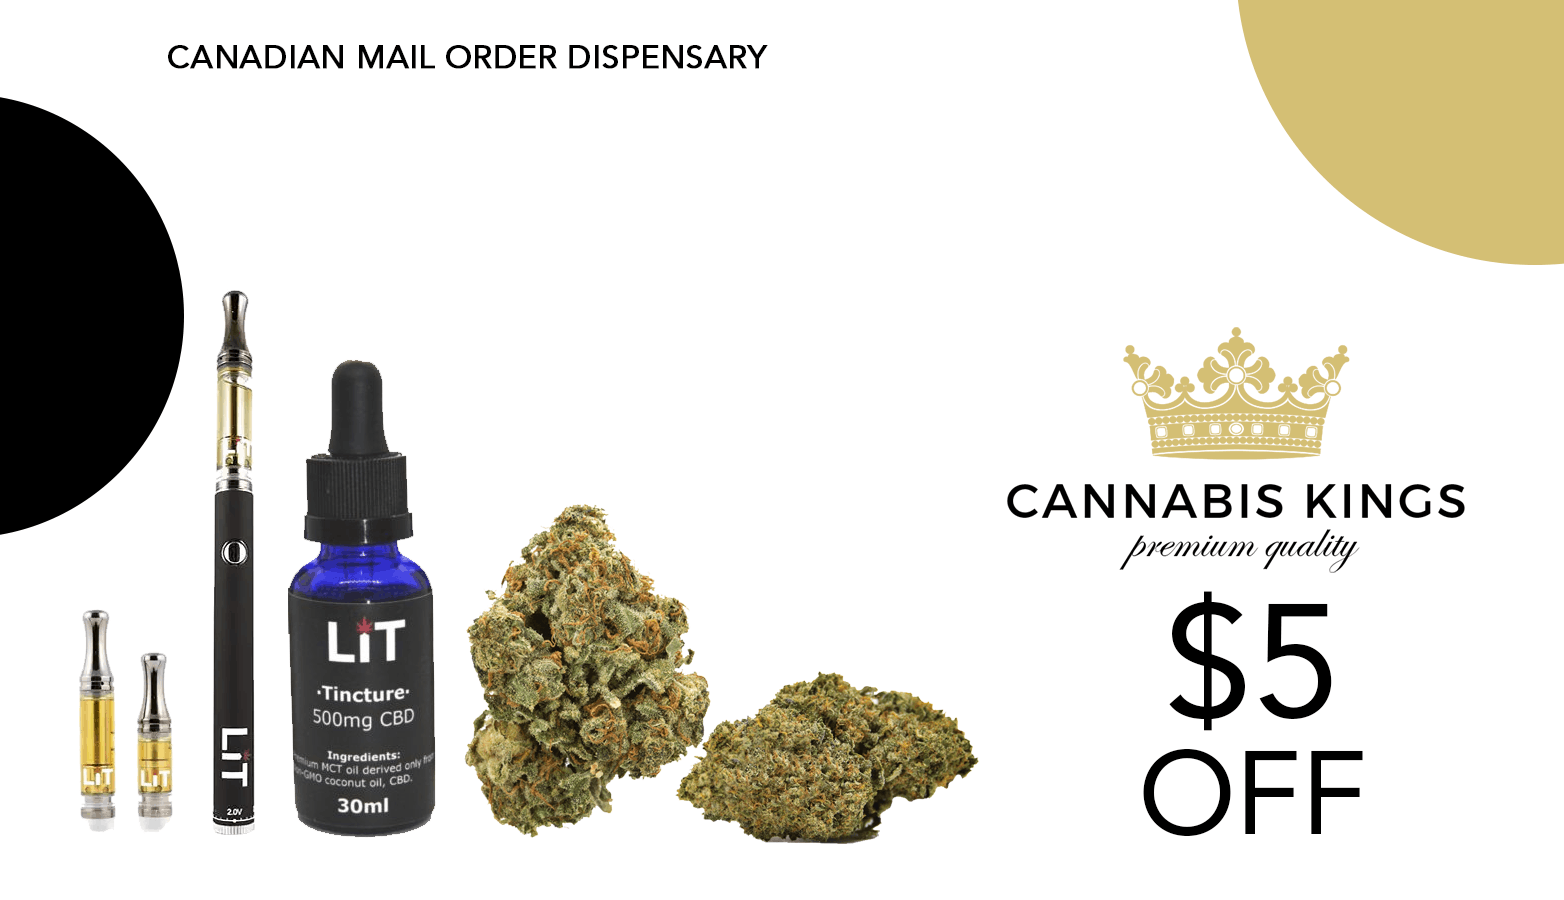 Cannabis Kings Coupon Code dollar 5 Offer Website